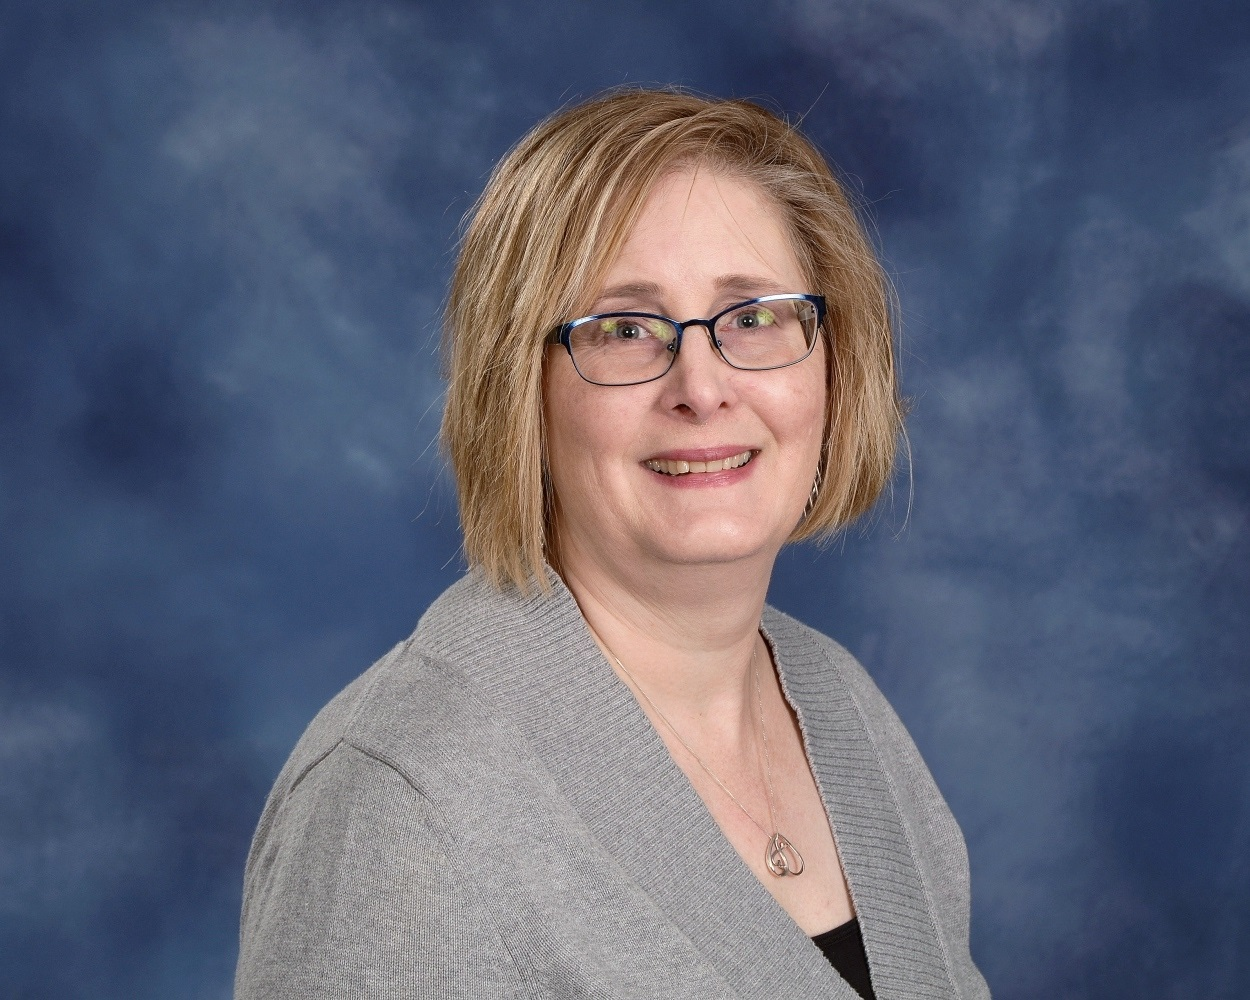 Kim Fathauer, Office Manager